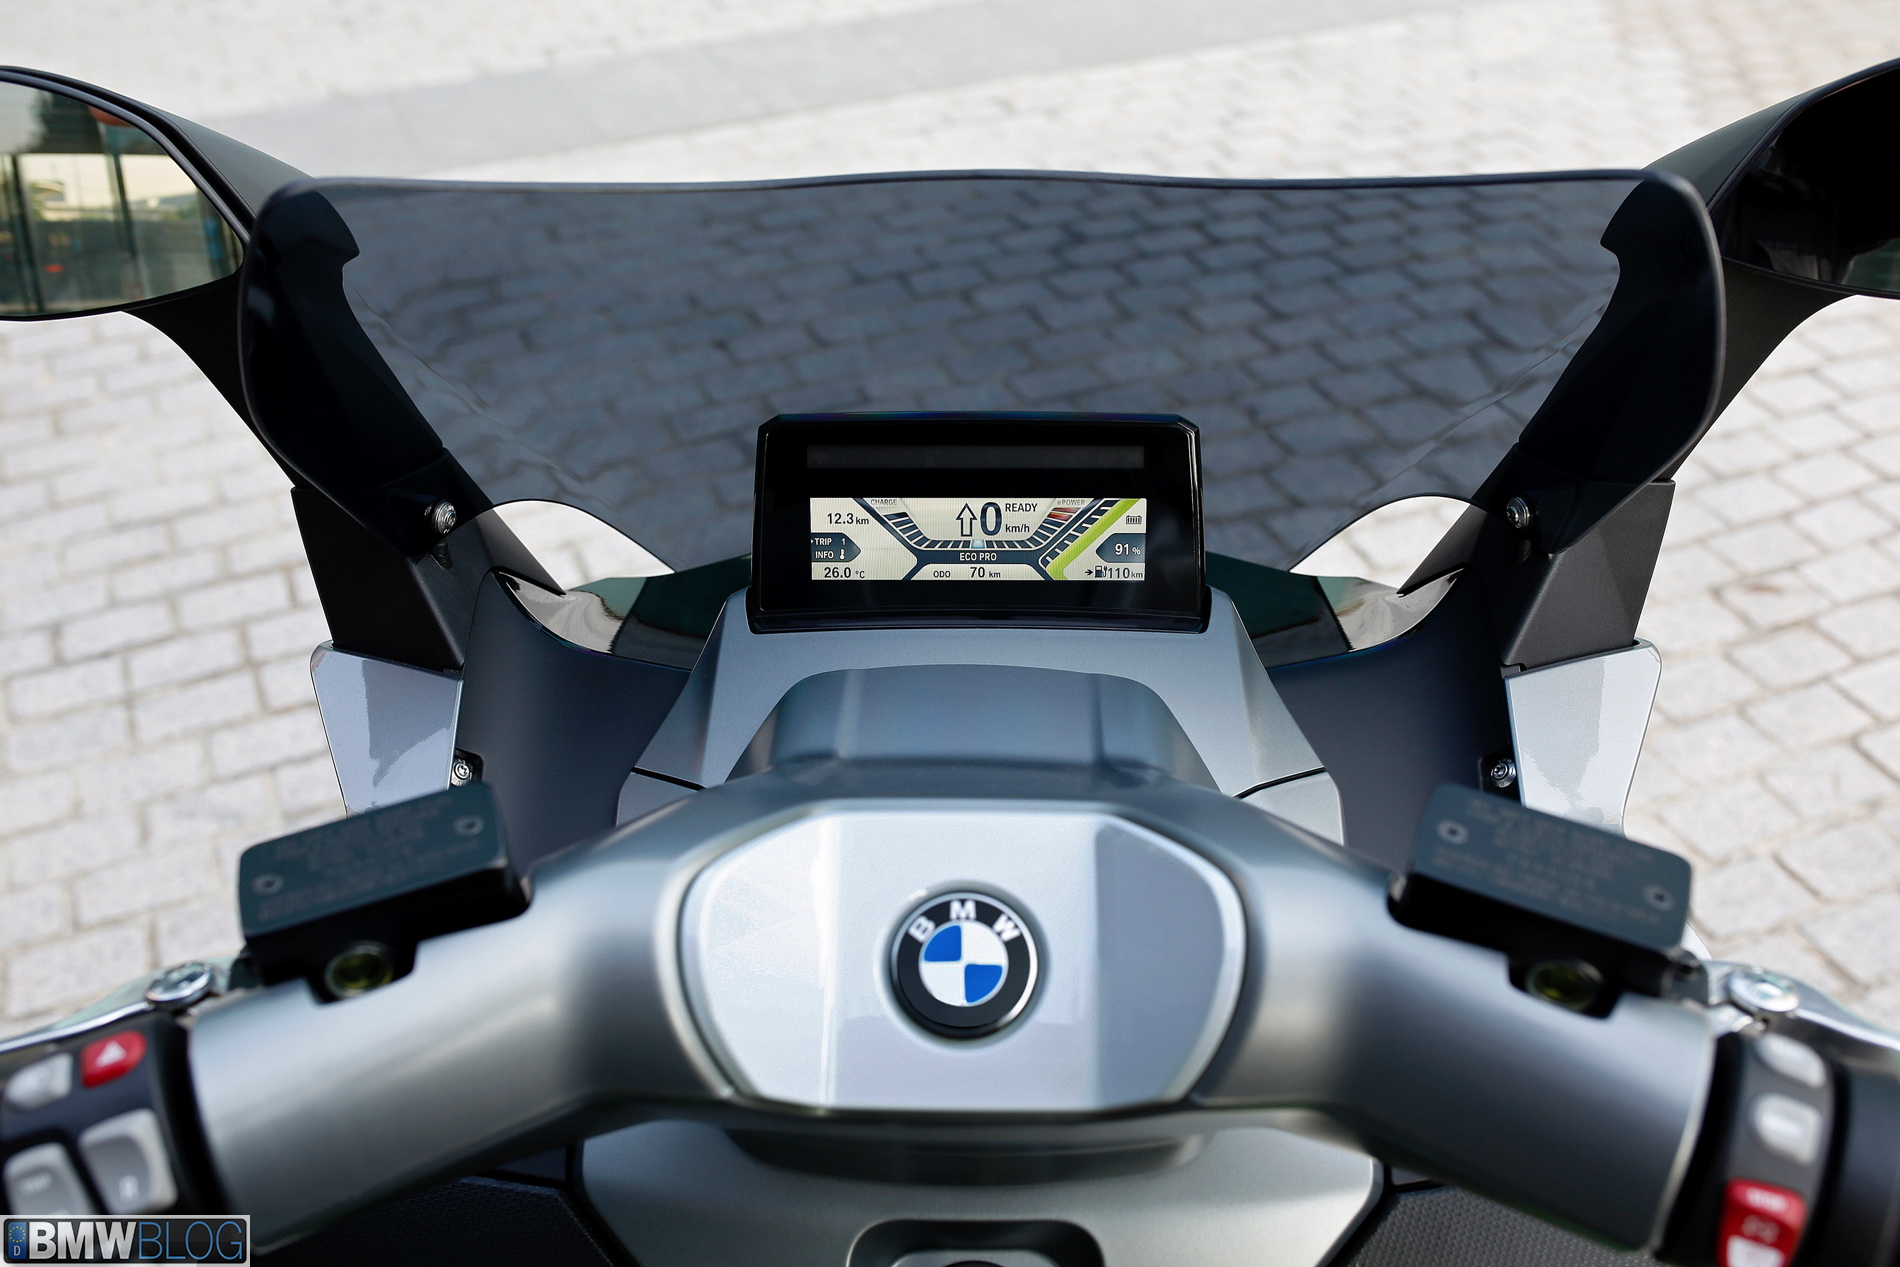 bmw c evolution electric scooter will launch in may